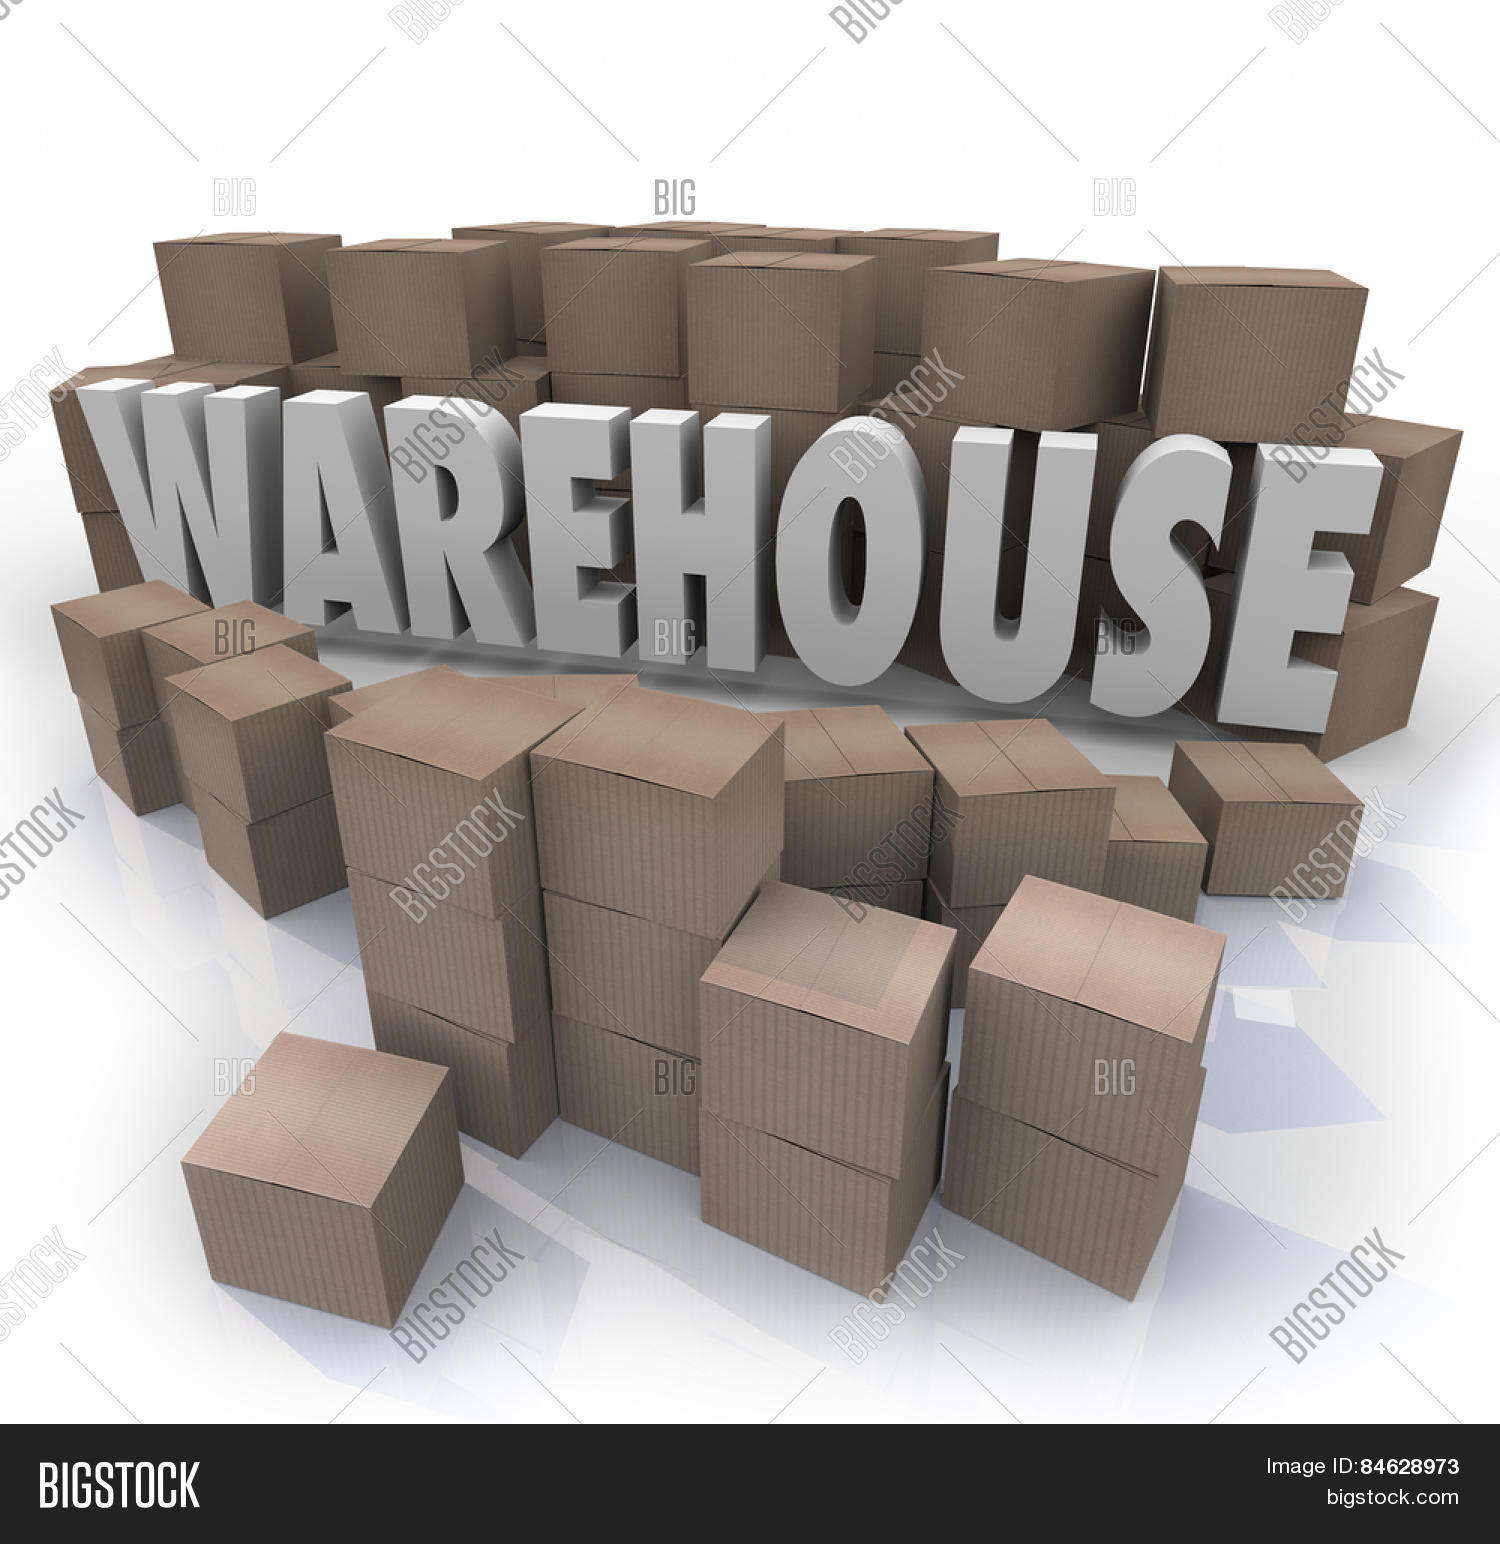 Warehouse word in 3d letters surrounded by cardboard boxes for Cheap 3d cardboard letters